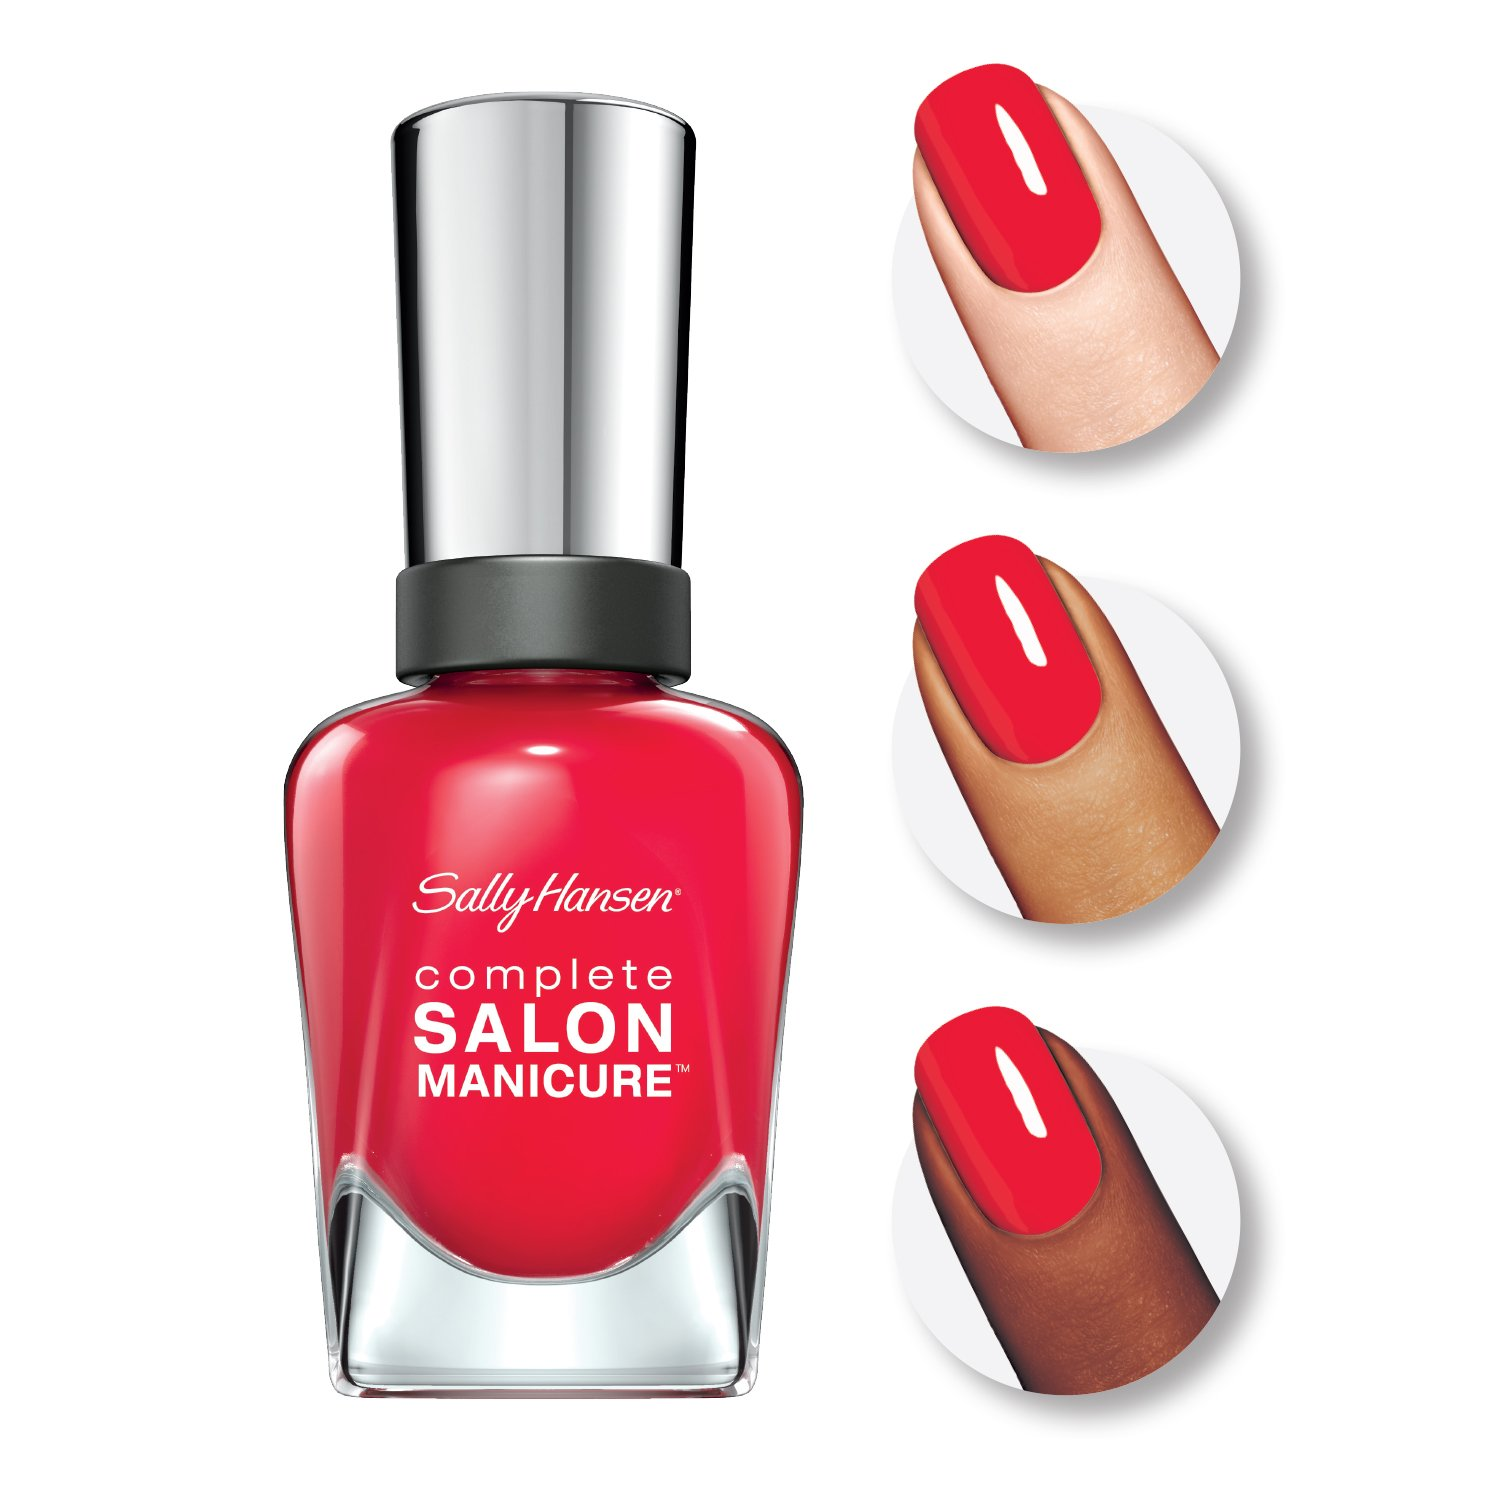 94dba78f55a Amazon.com : Sally Hansen Complete Salon Manicure Nail Color, All Fired Up,  0.5 Ounce : Beauty